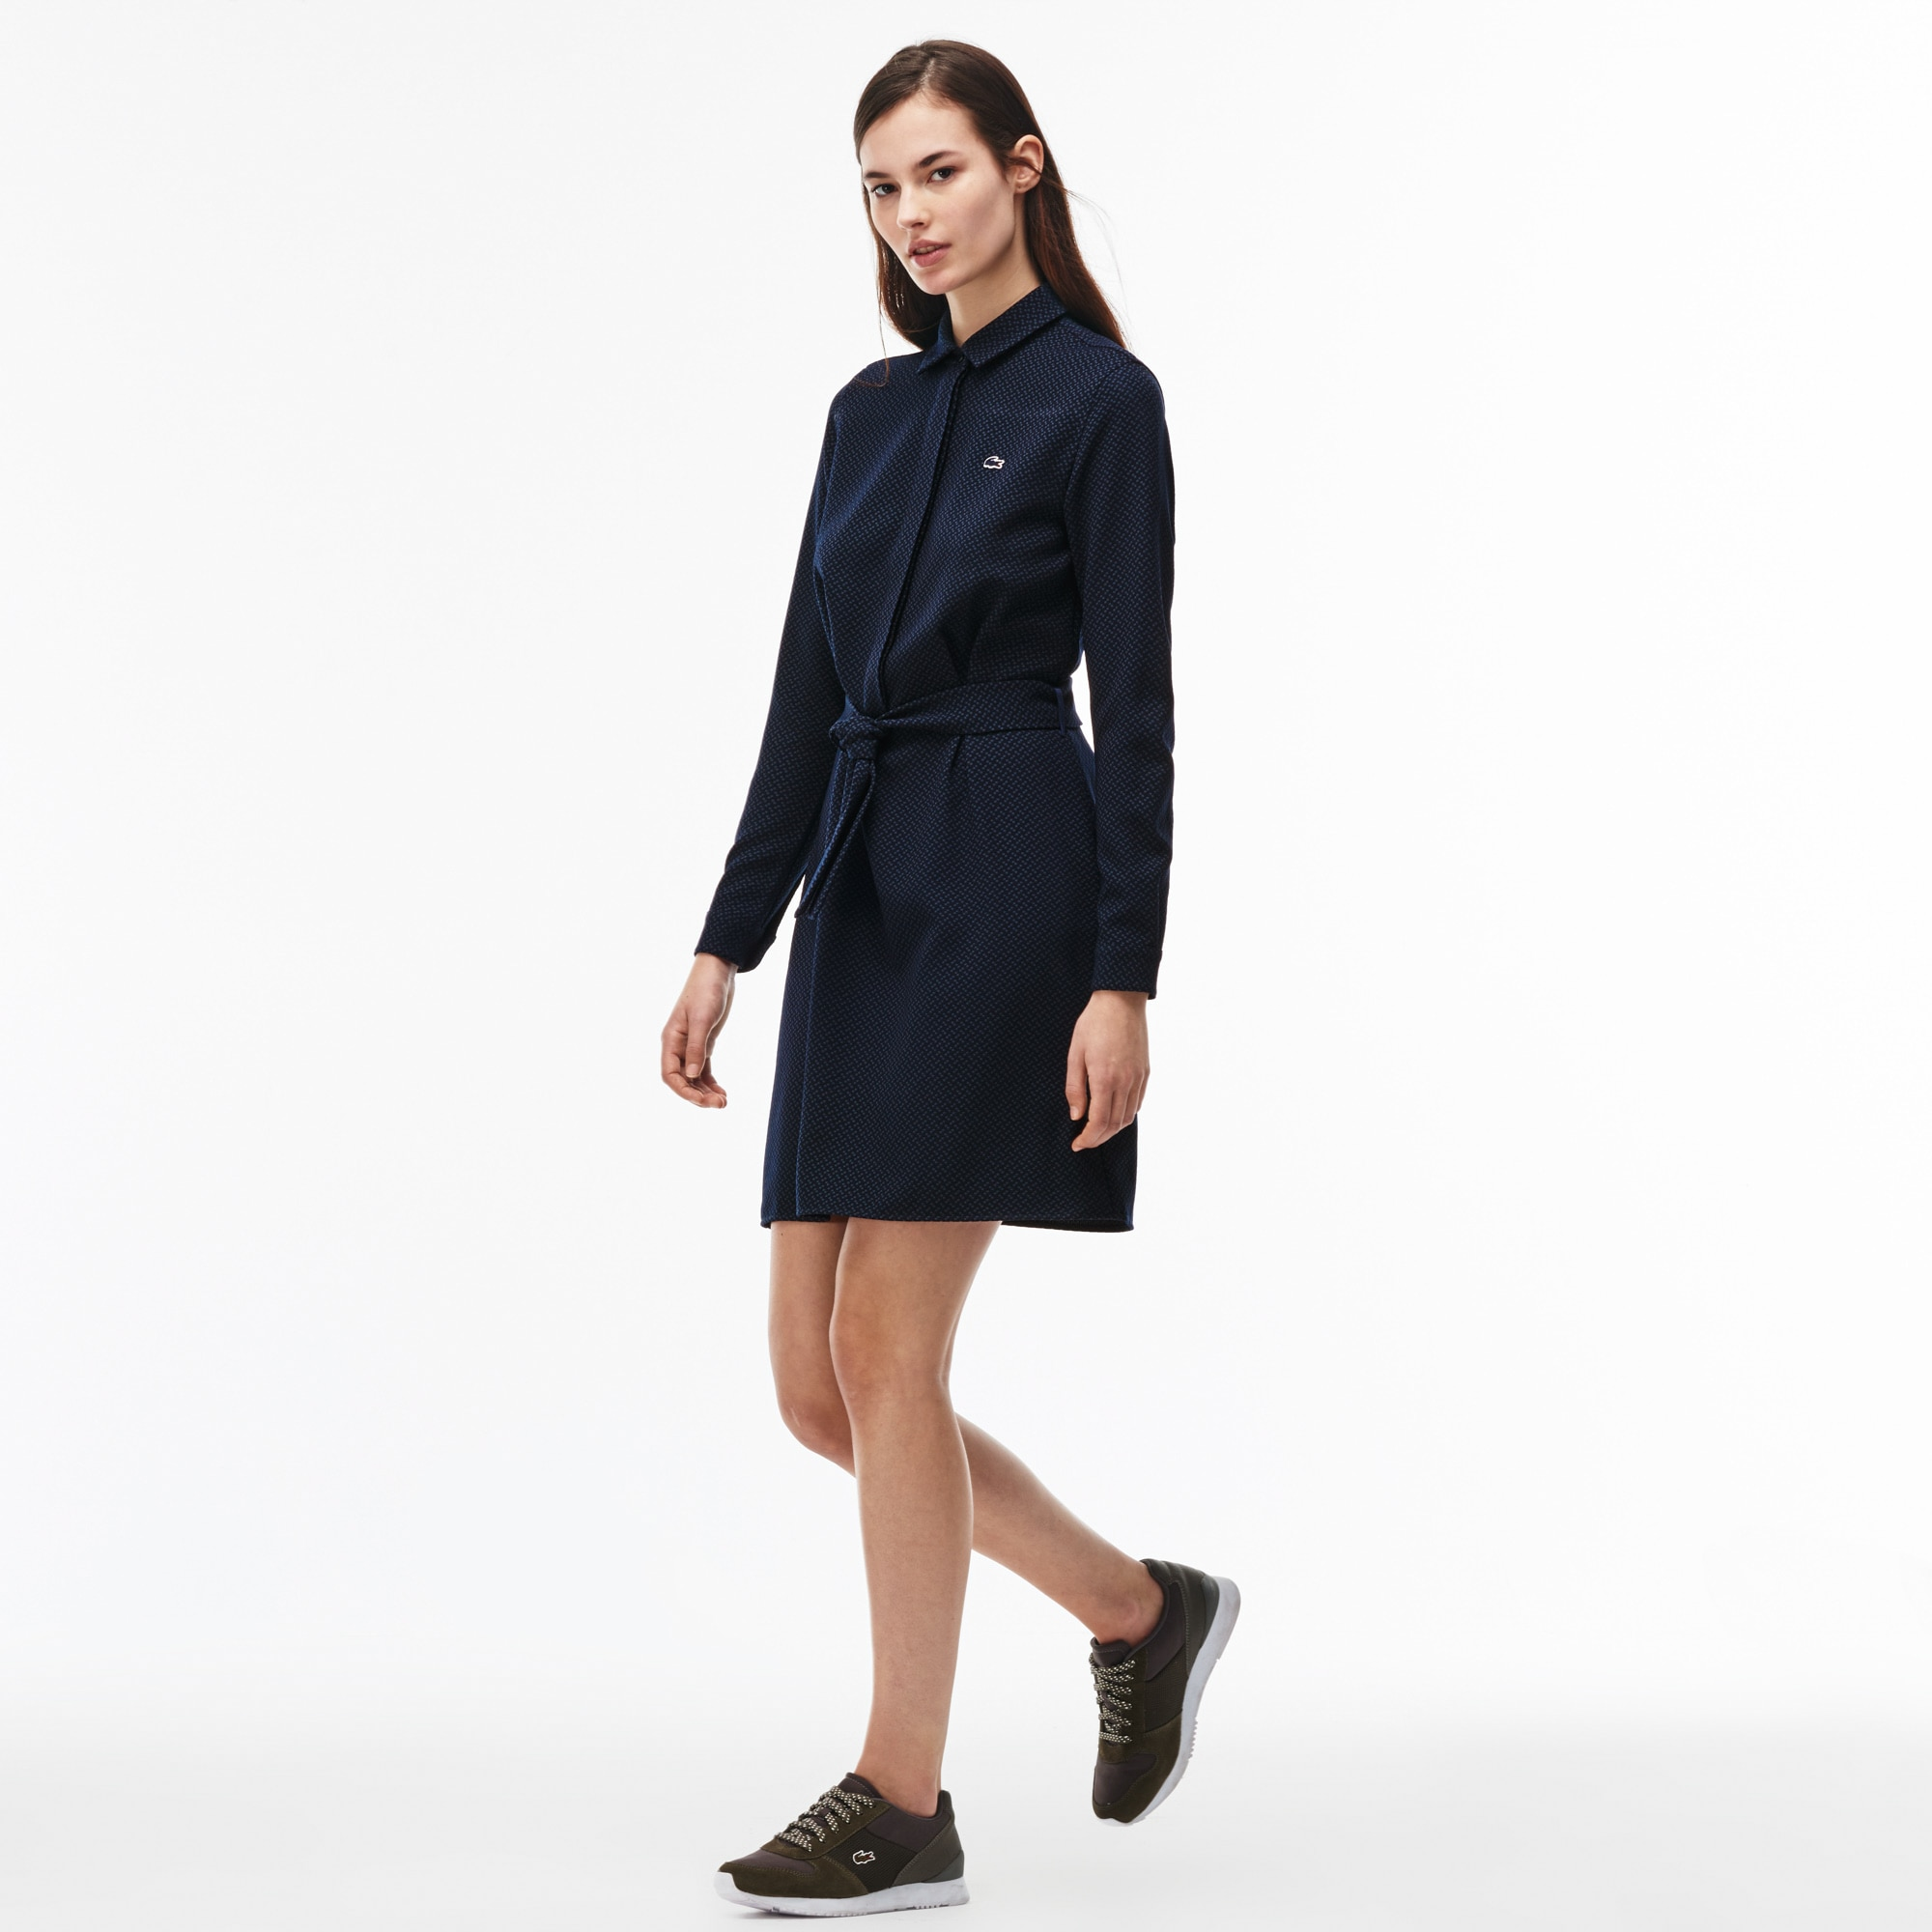 Women's  LIVE Jacquard Dress